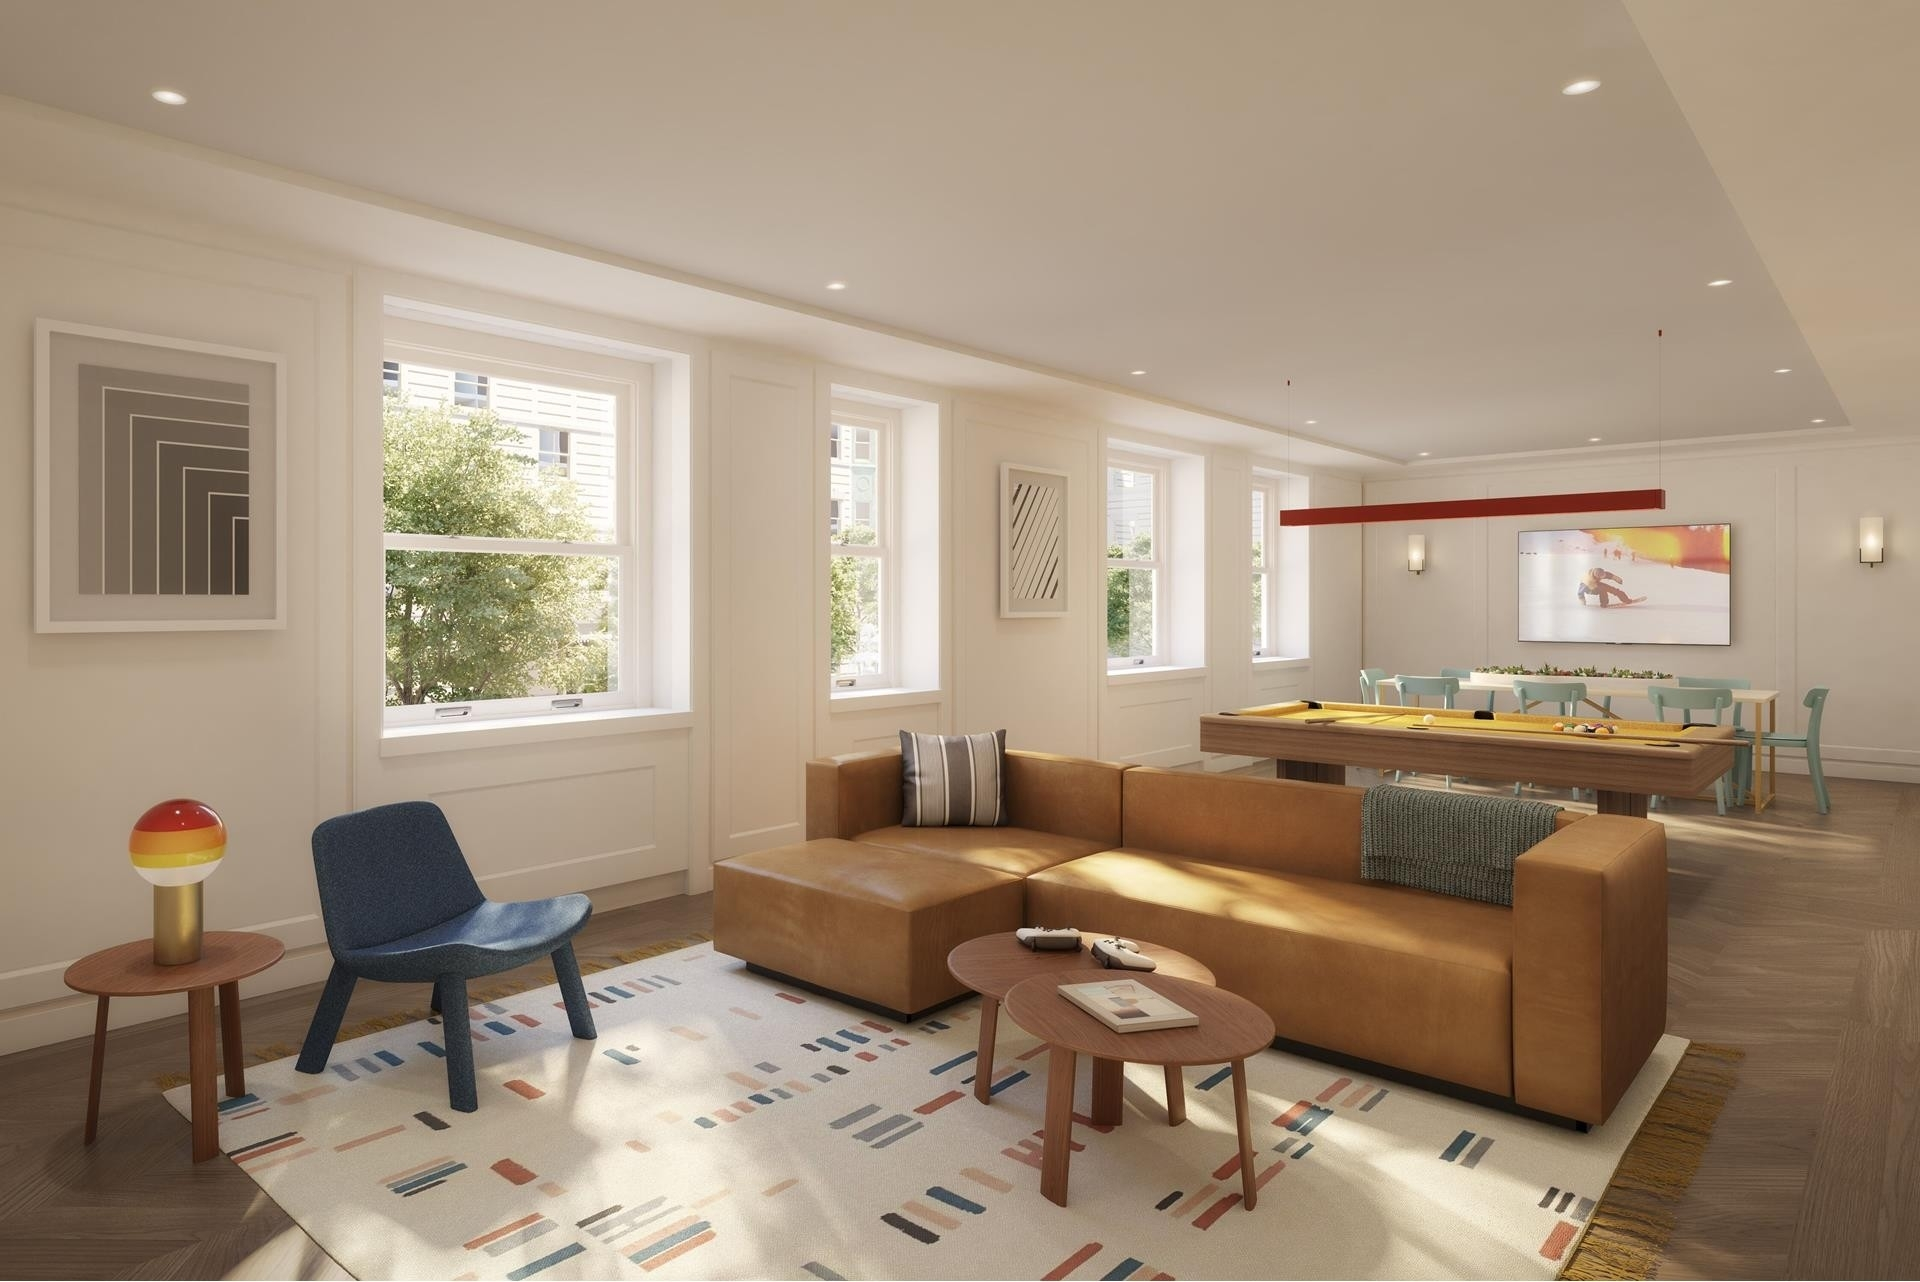 21. Condominiums for Sale at The Belnord, 225 West 86th St, 1103 Upper West Side, New York, NY 10024